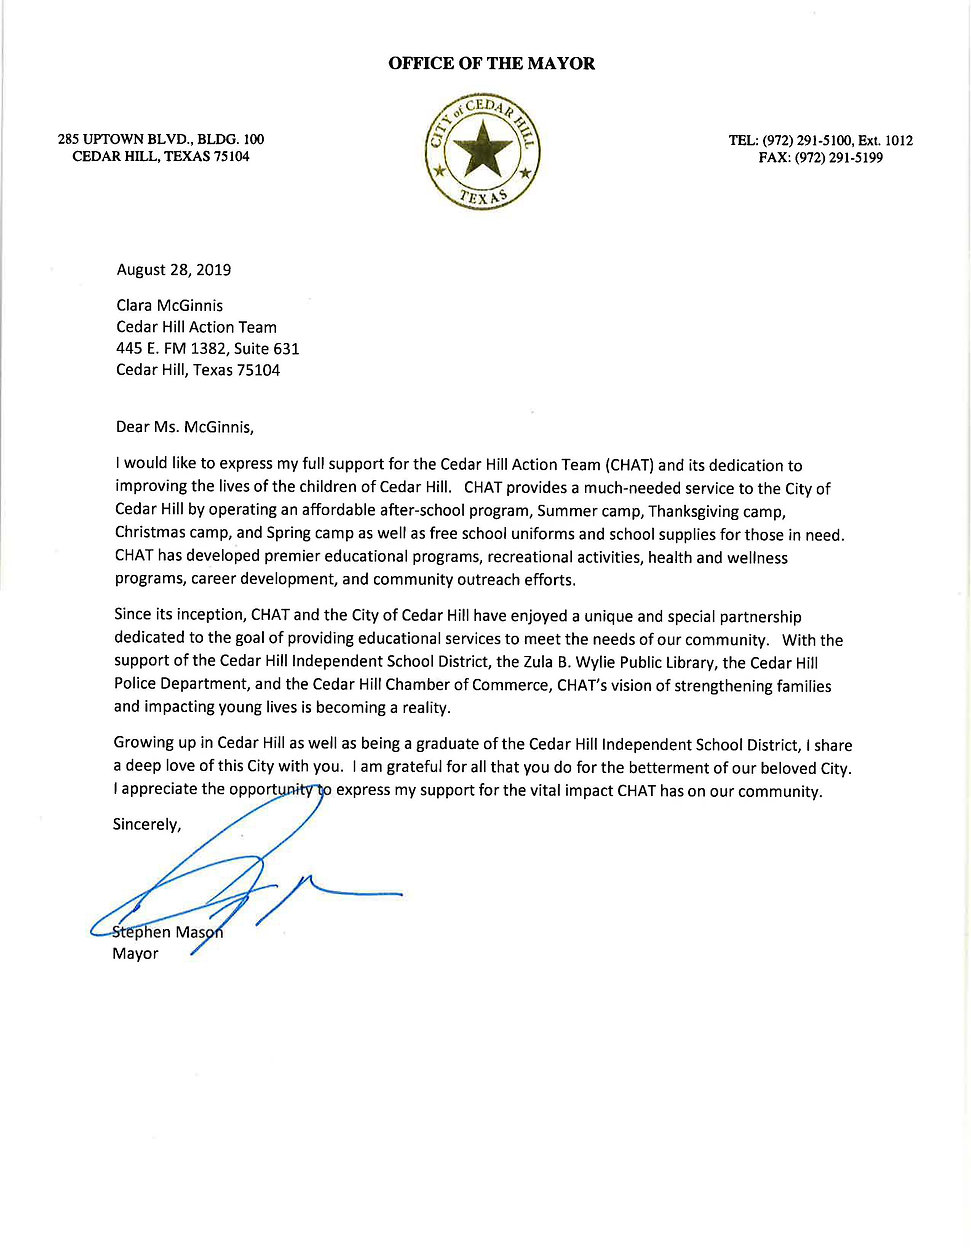 Letter from Mayor Mason.jpg